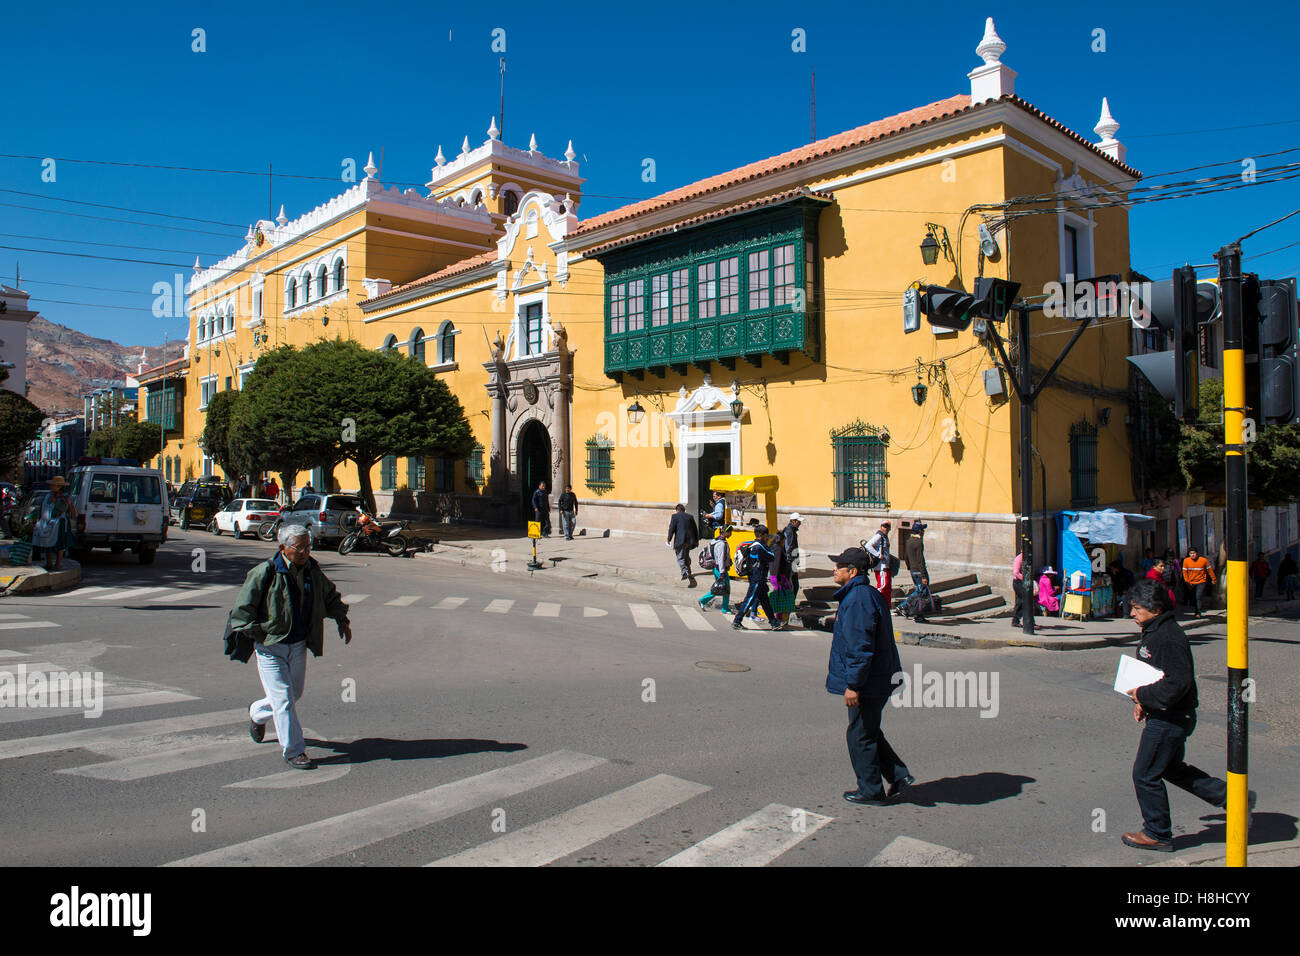 Potosi, Bolivia - November 29, 2013: People crossing a crosswalk the city of Potosi in Bolivia. - Stock Image